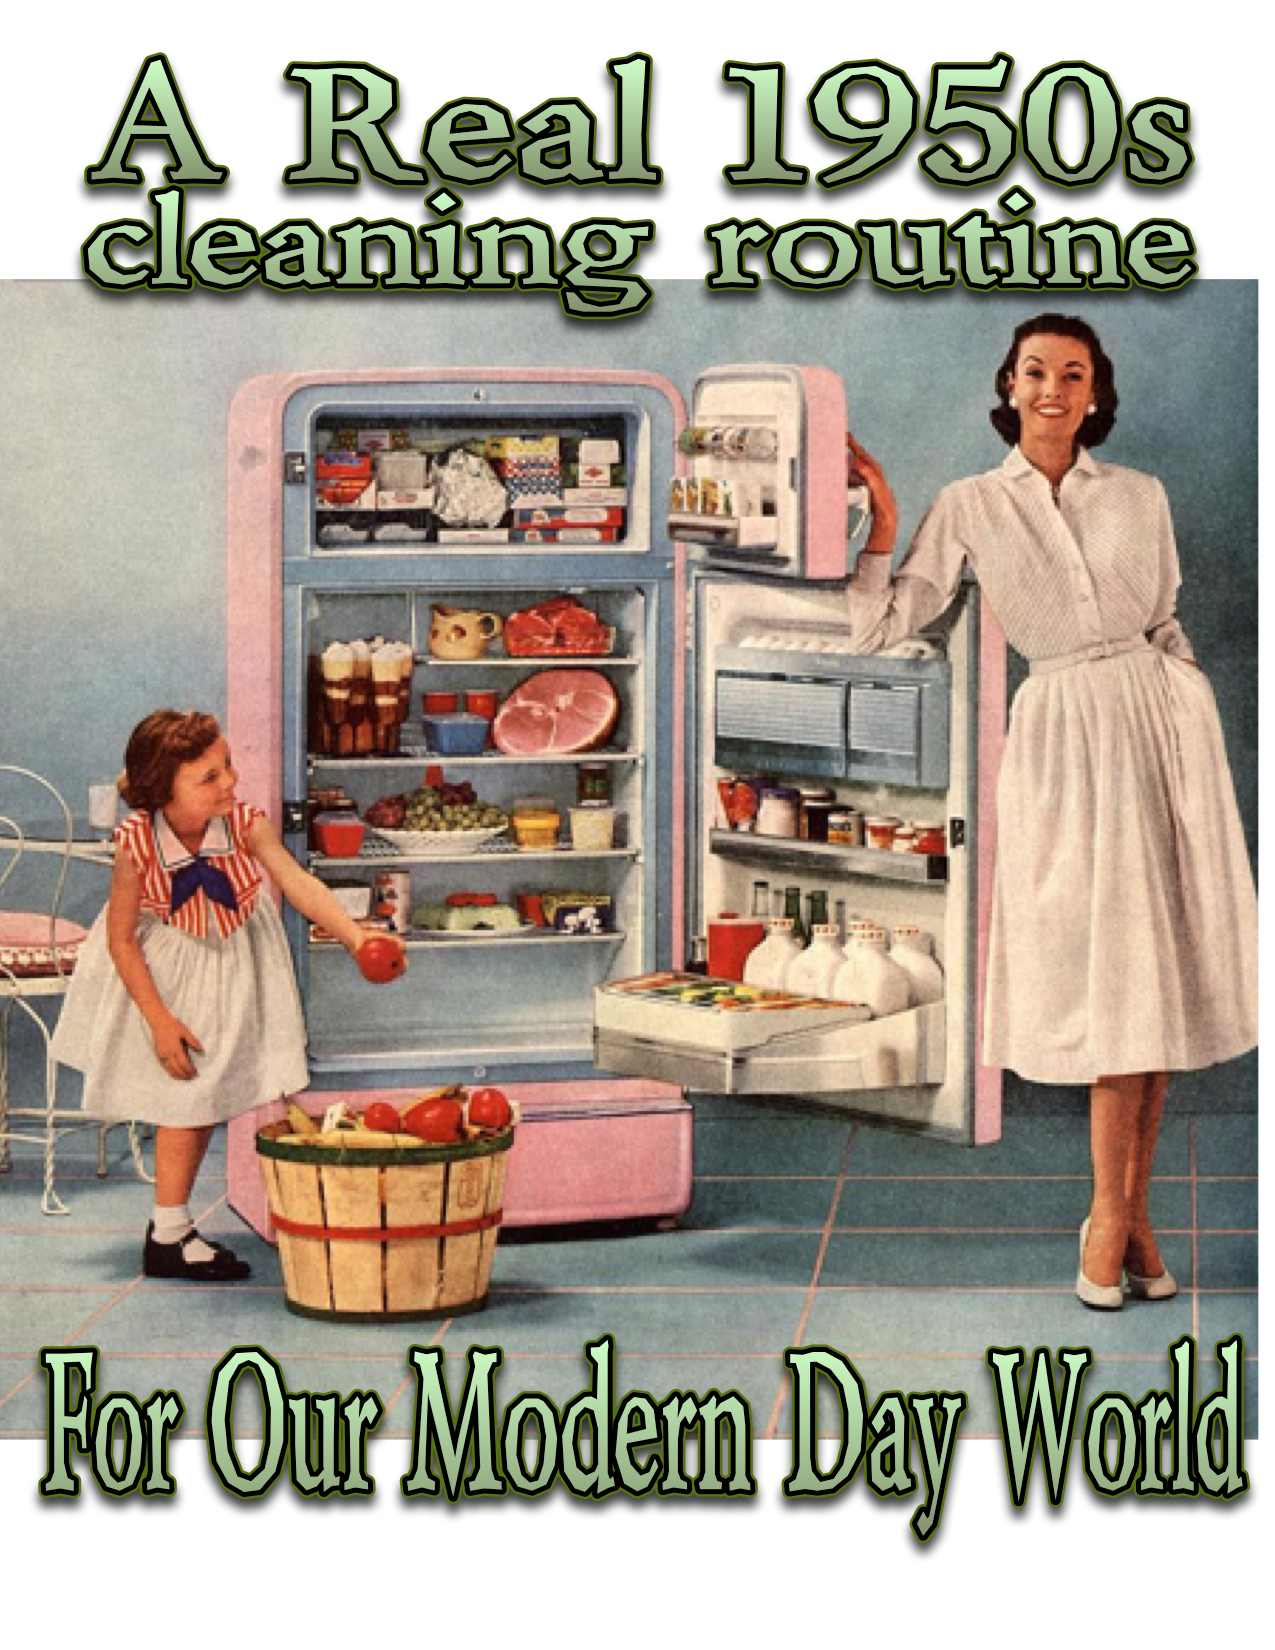 A Real 1950s Daily Cleaning Routine by the 50s Housewife